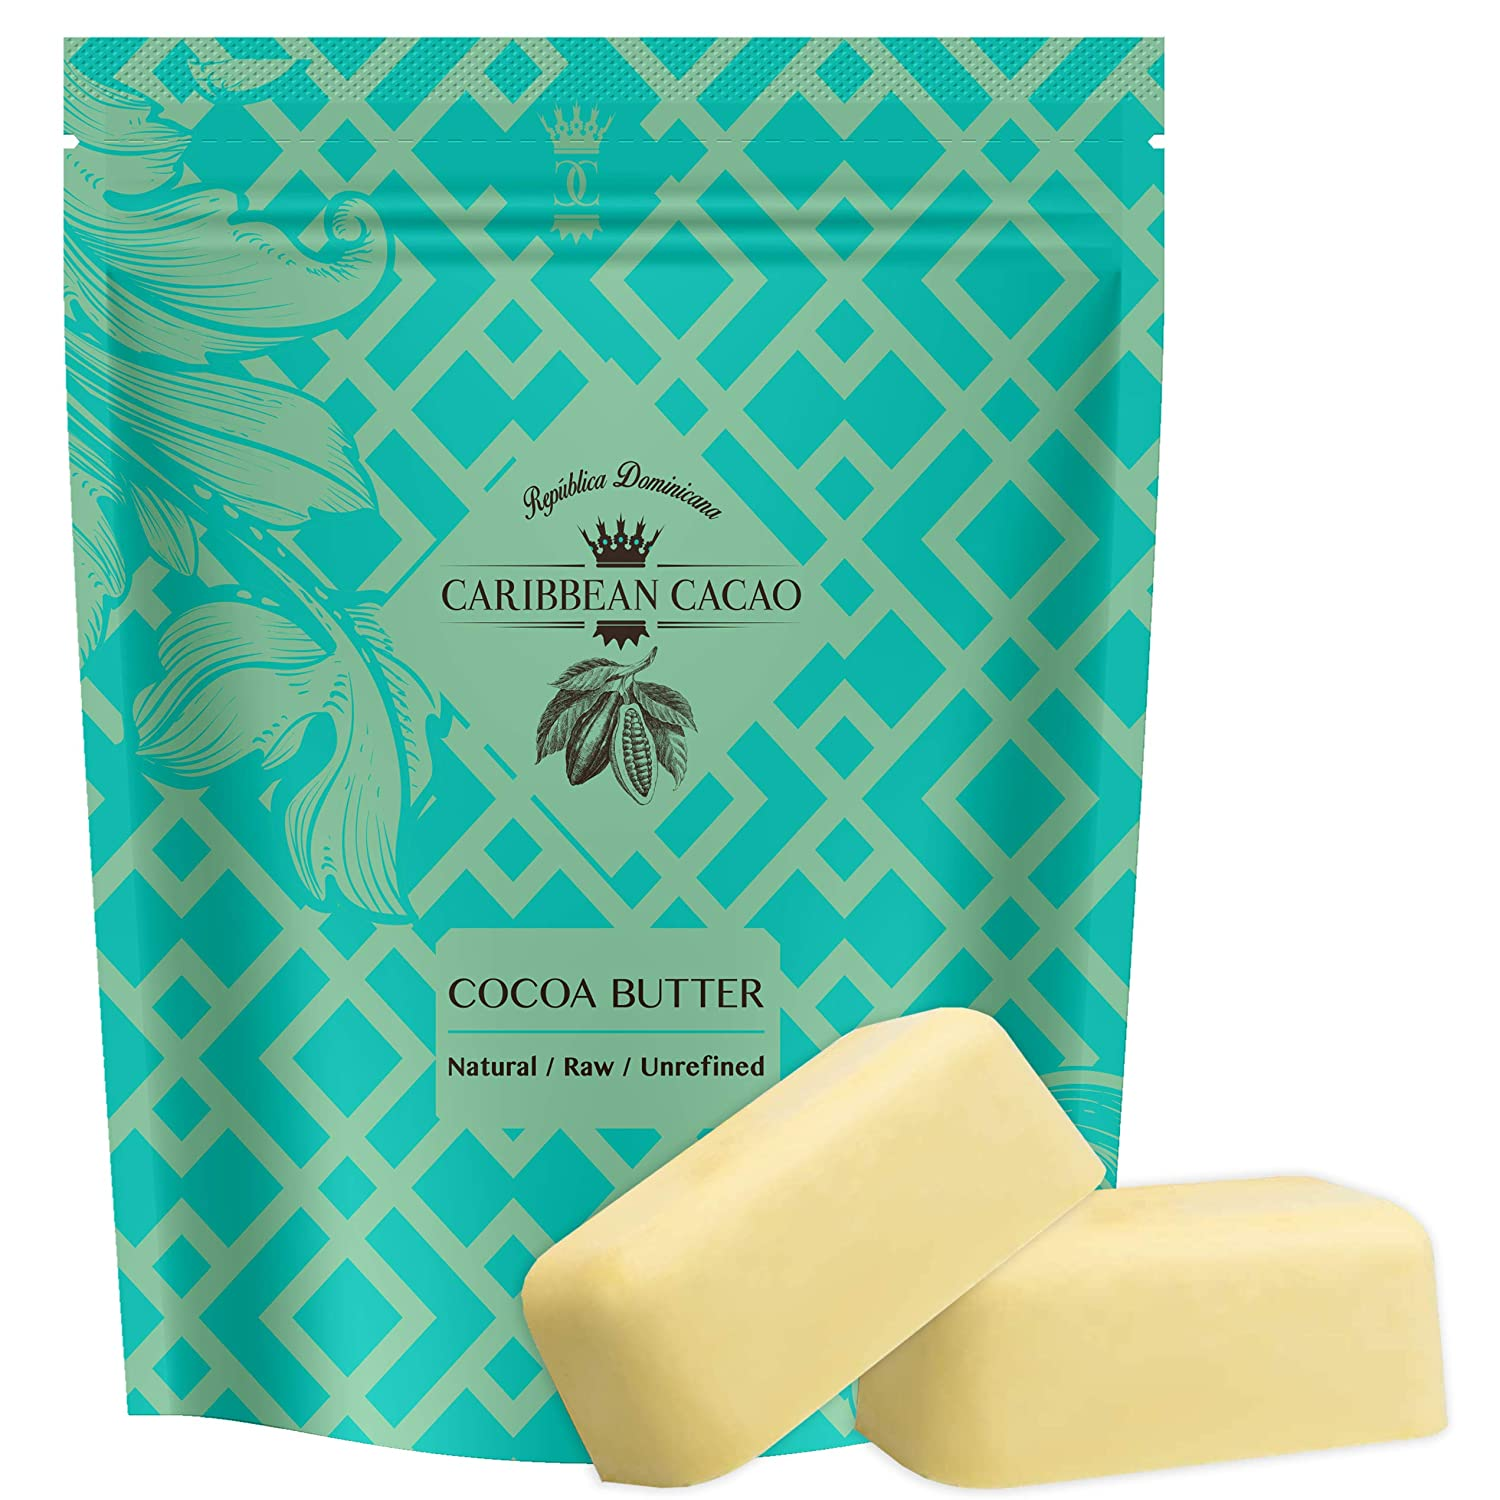 Cocoa Butter Raw Pure Unrefined - 2 LB Body Butter From Our Exclusive Source In The Dominican Republic, Incredible Quality & Scent, Cacao Butter For Beautiful, Radiant Skin, Stretch Marks, Etc